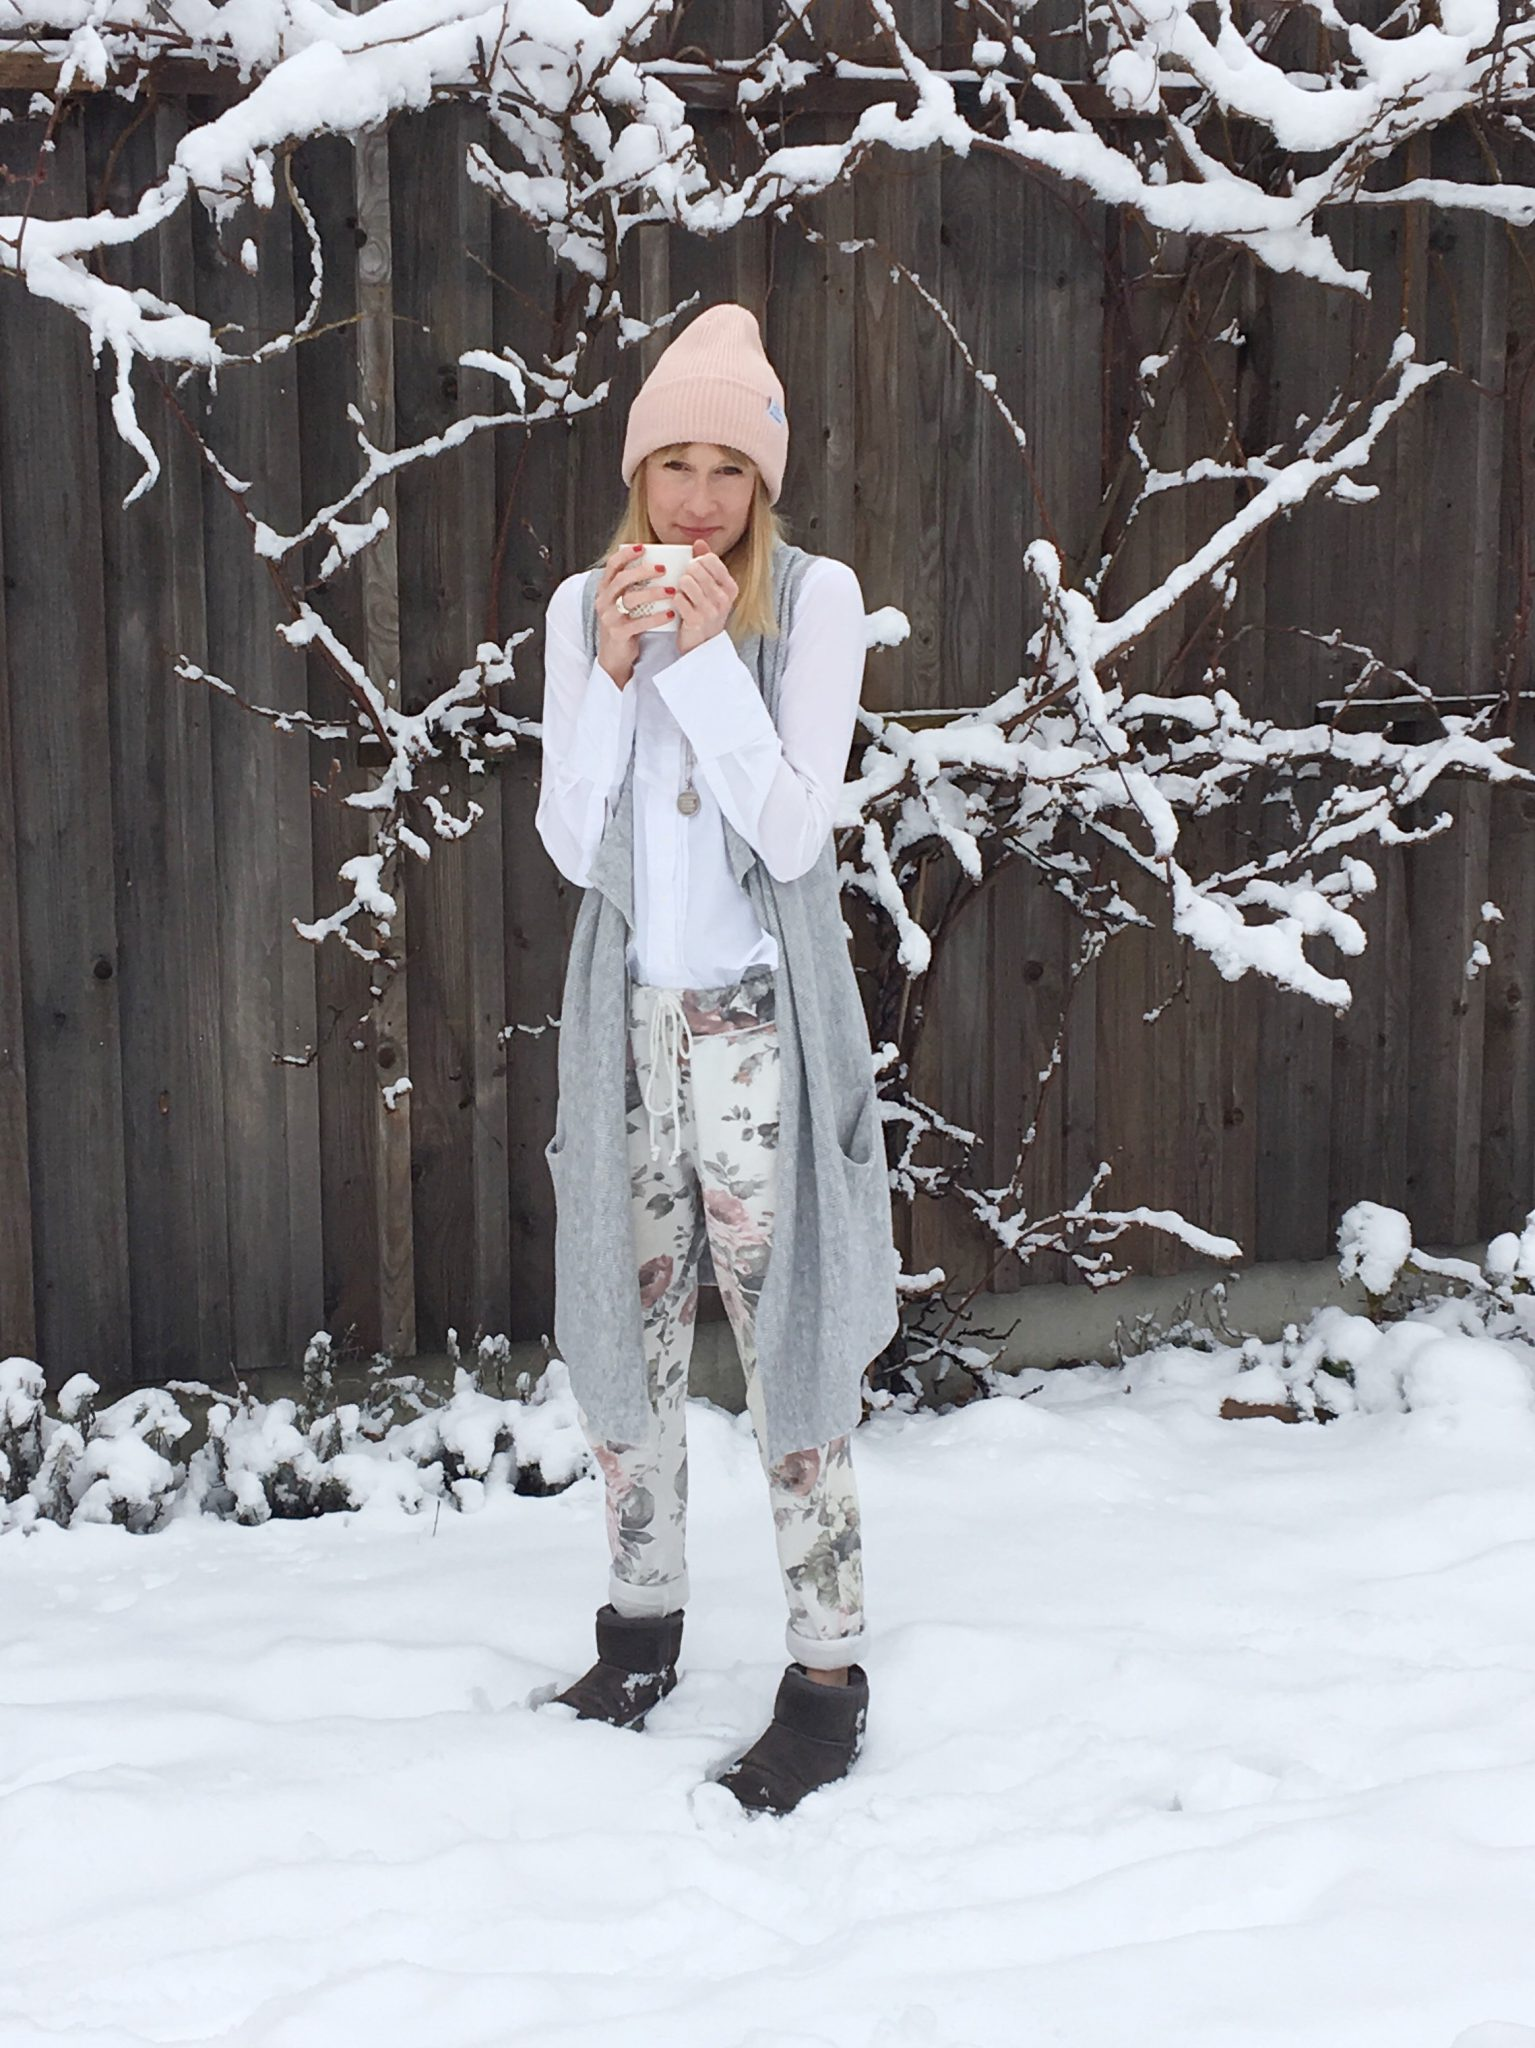 Joggingpants, weiße Bluse, Esprit, Jogginghose, Klassiker, Modemama, Mamainstyle, Mamablog, Modeblog, Trend Jogginghose, Winterlook, Leisure Look